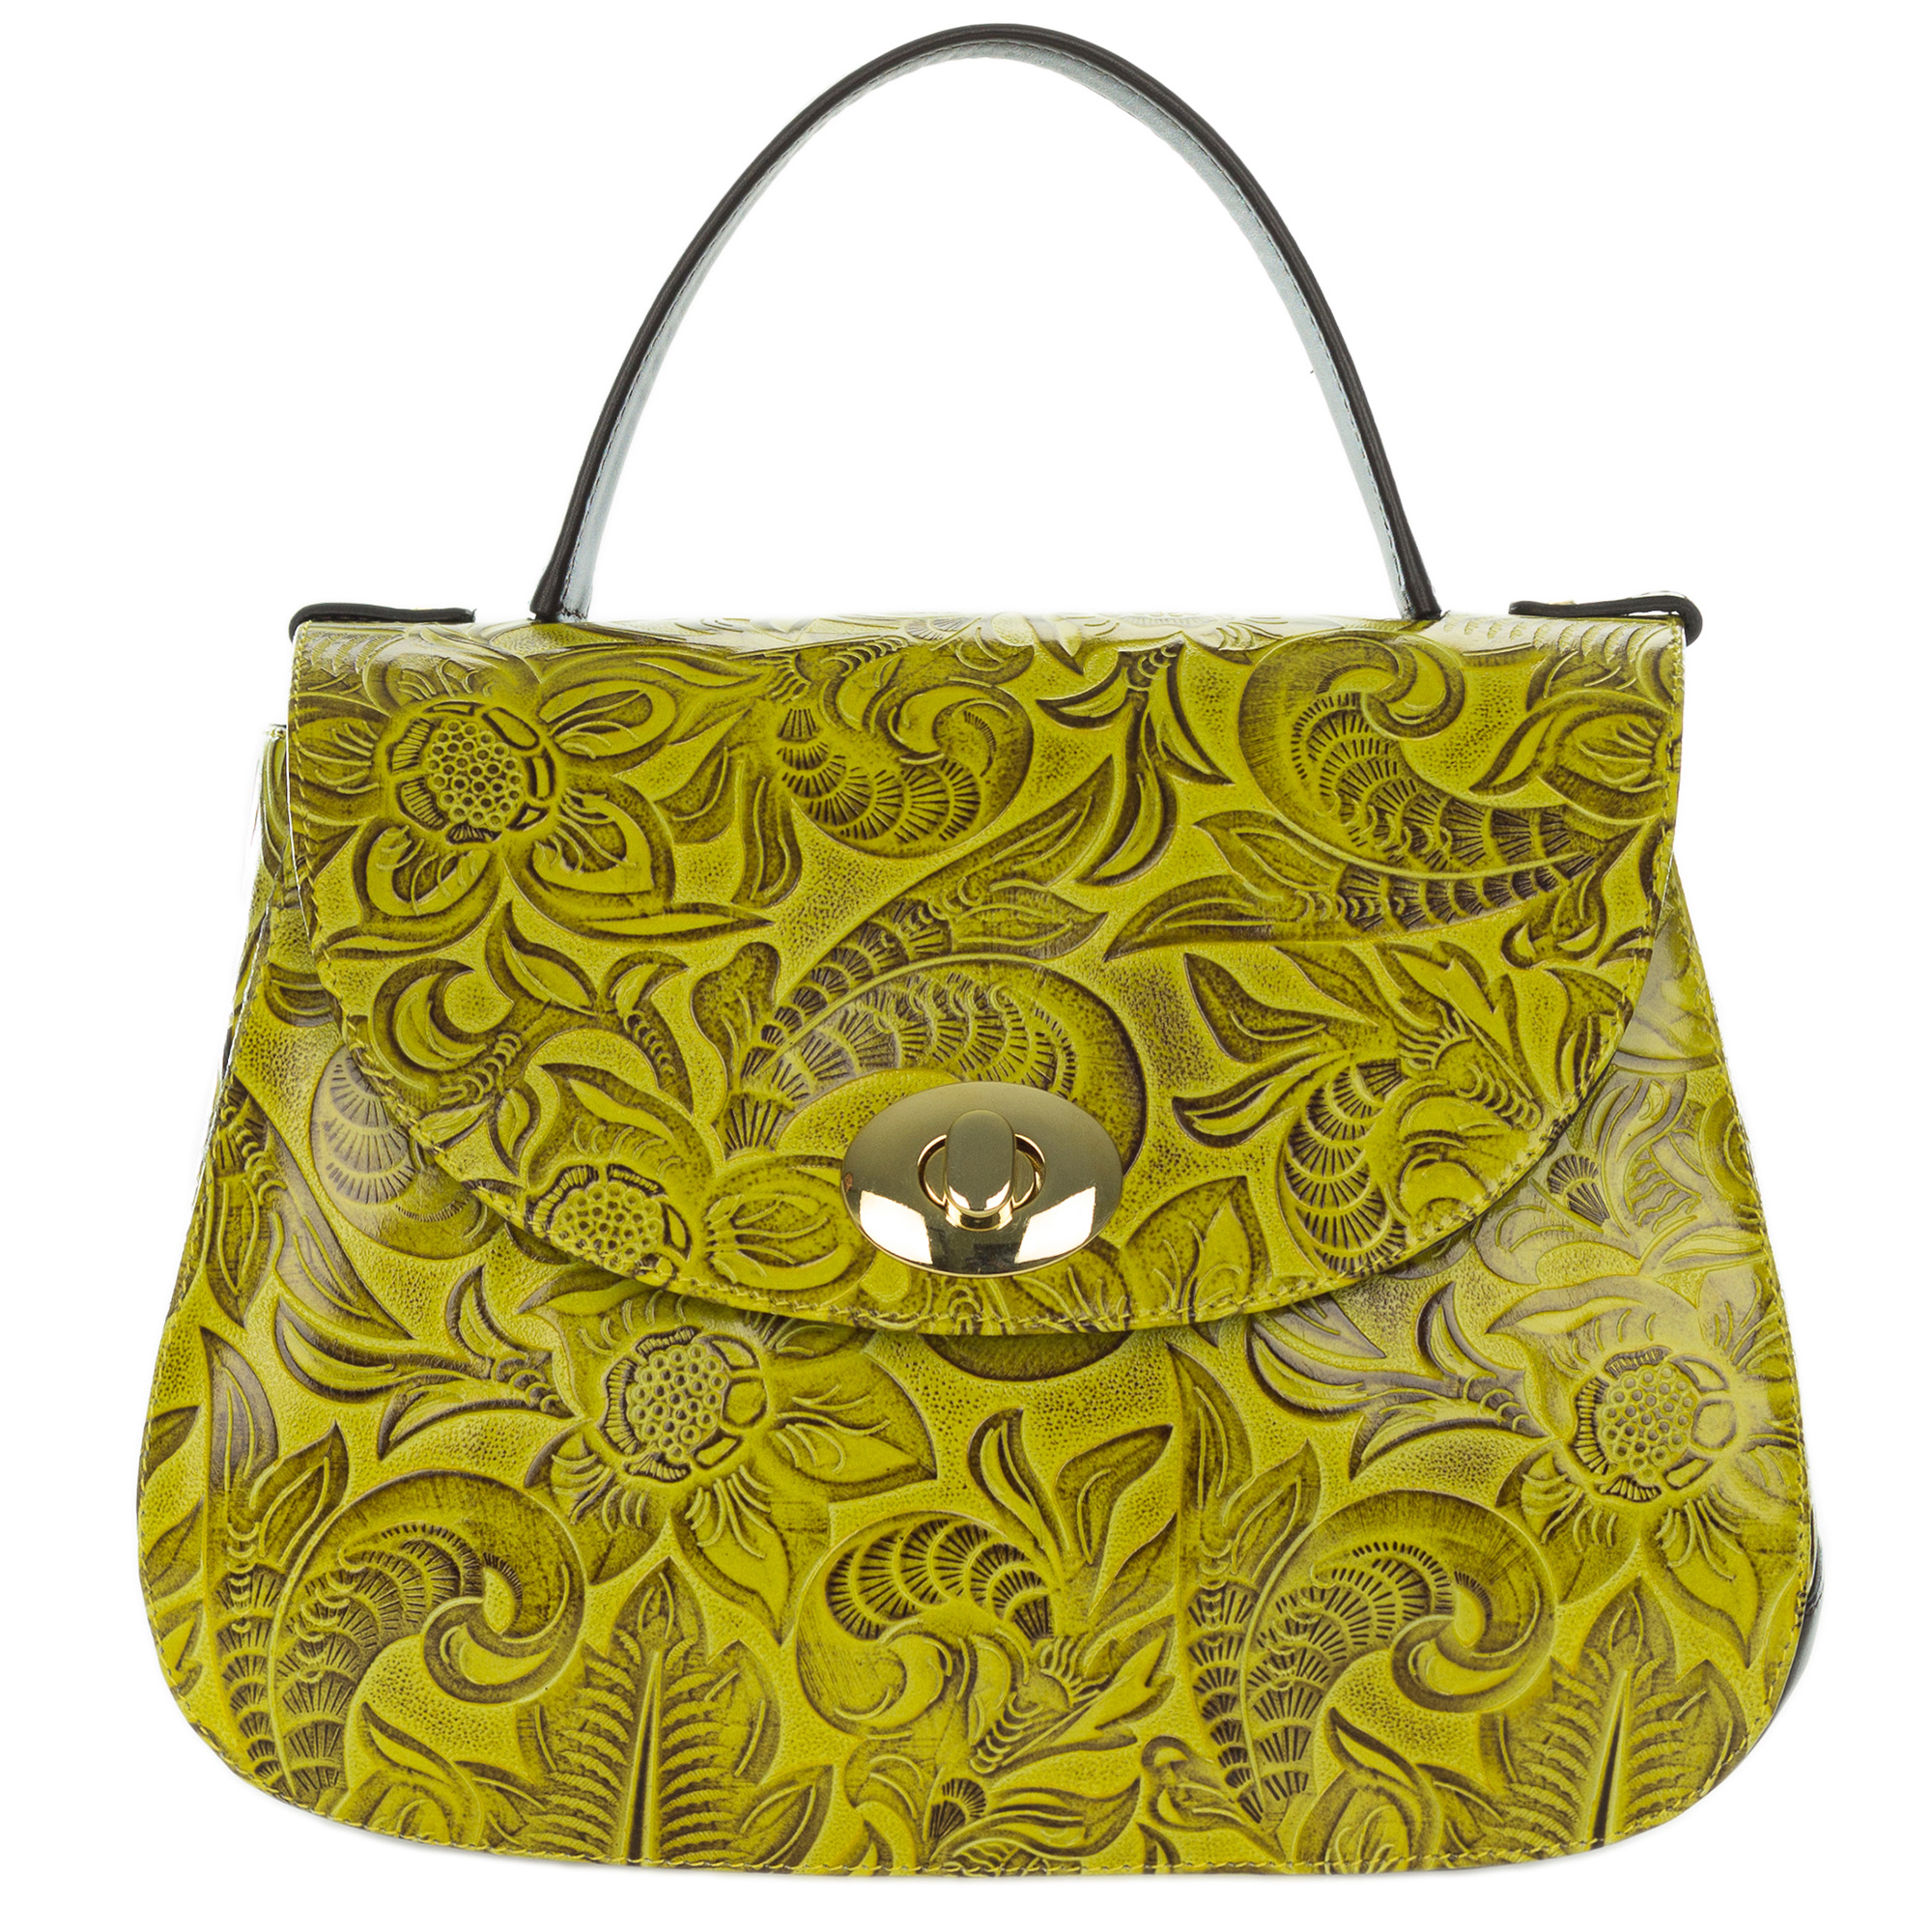 a6bf3eadf Floral Leather Handbags | Stanford Center for Opportunity Policy in ...